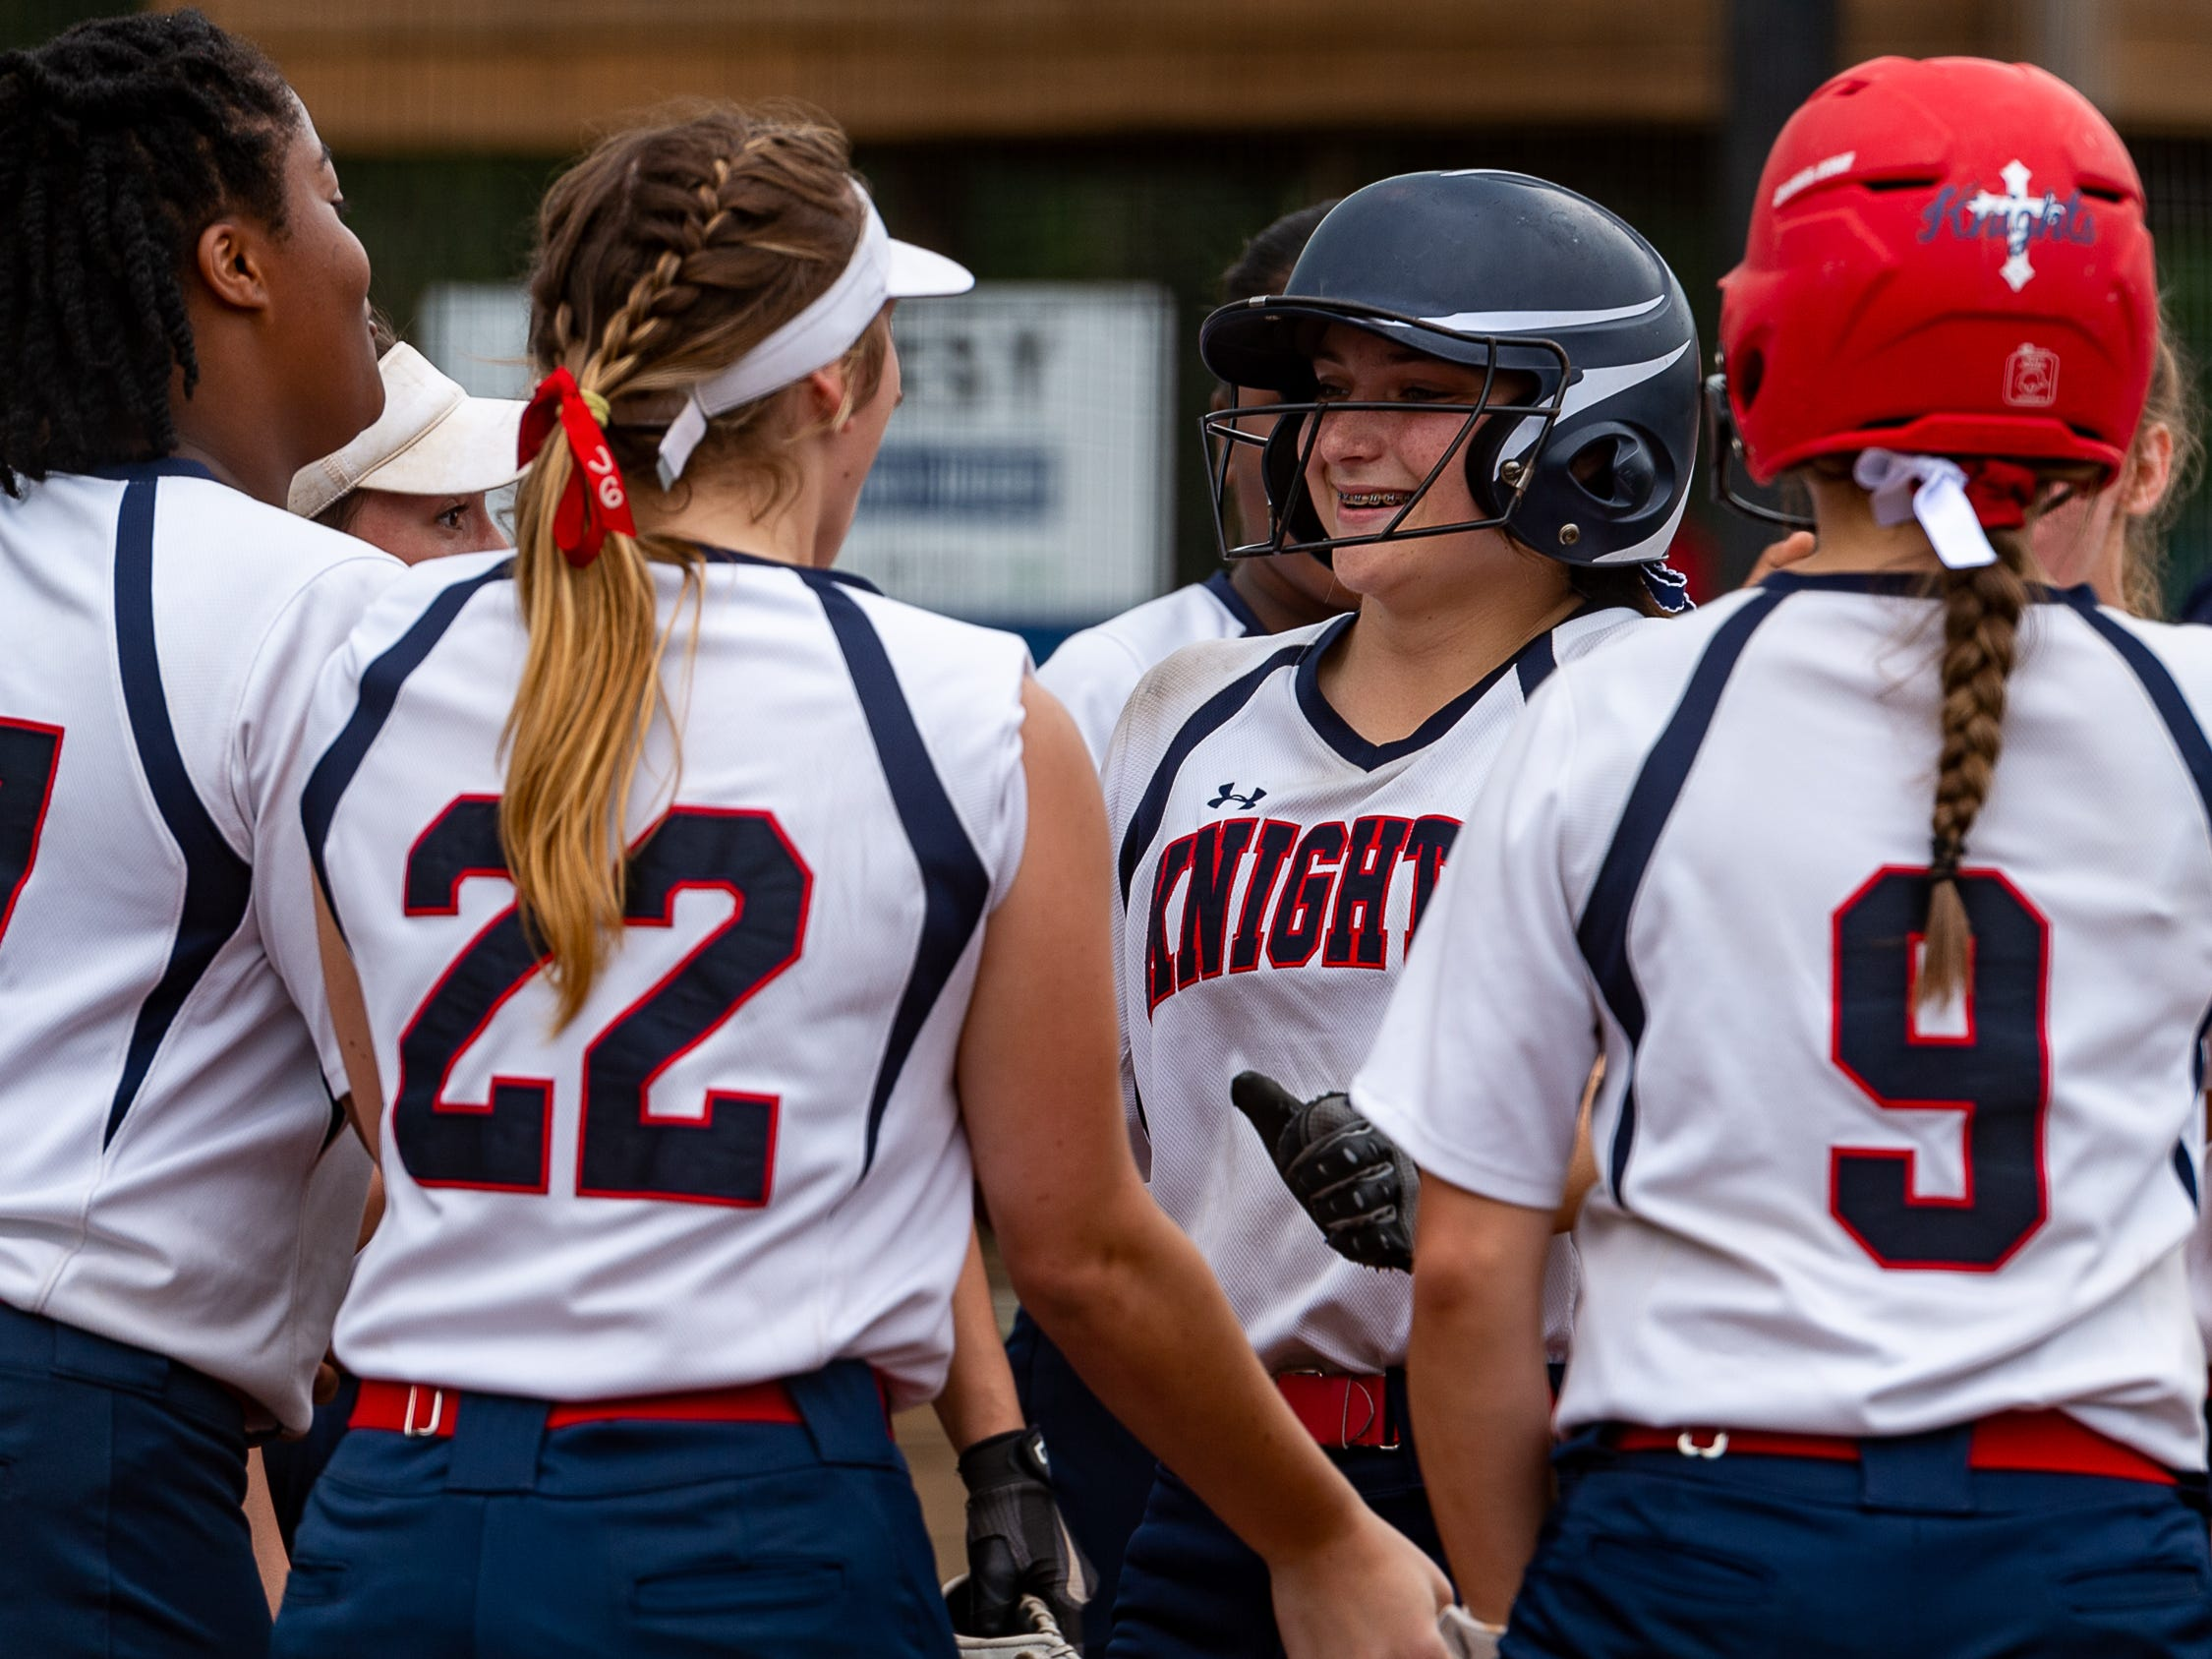 Stevie Credeur hits a home run as  Lafayette Christian Academy softball takes on University Academy in the forst round of the LHSAA playoffs. Friday, April 12, 2019.